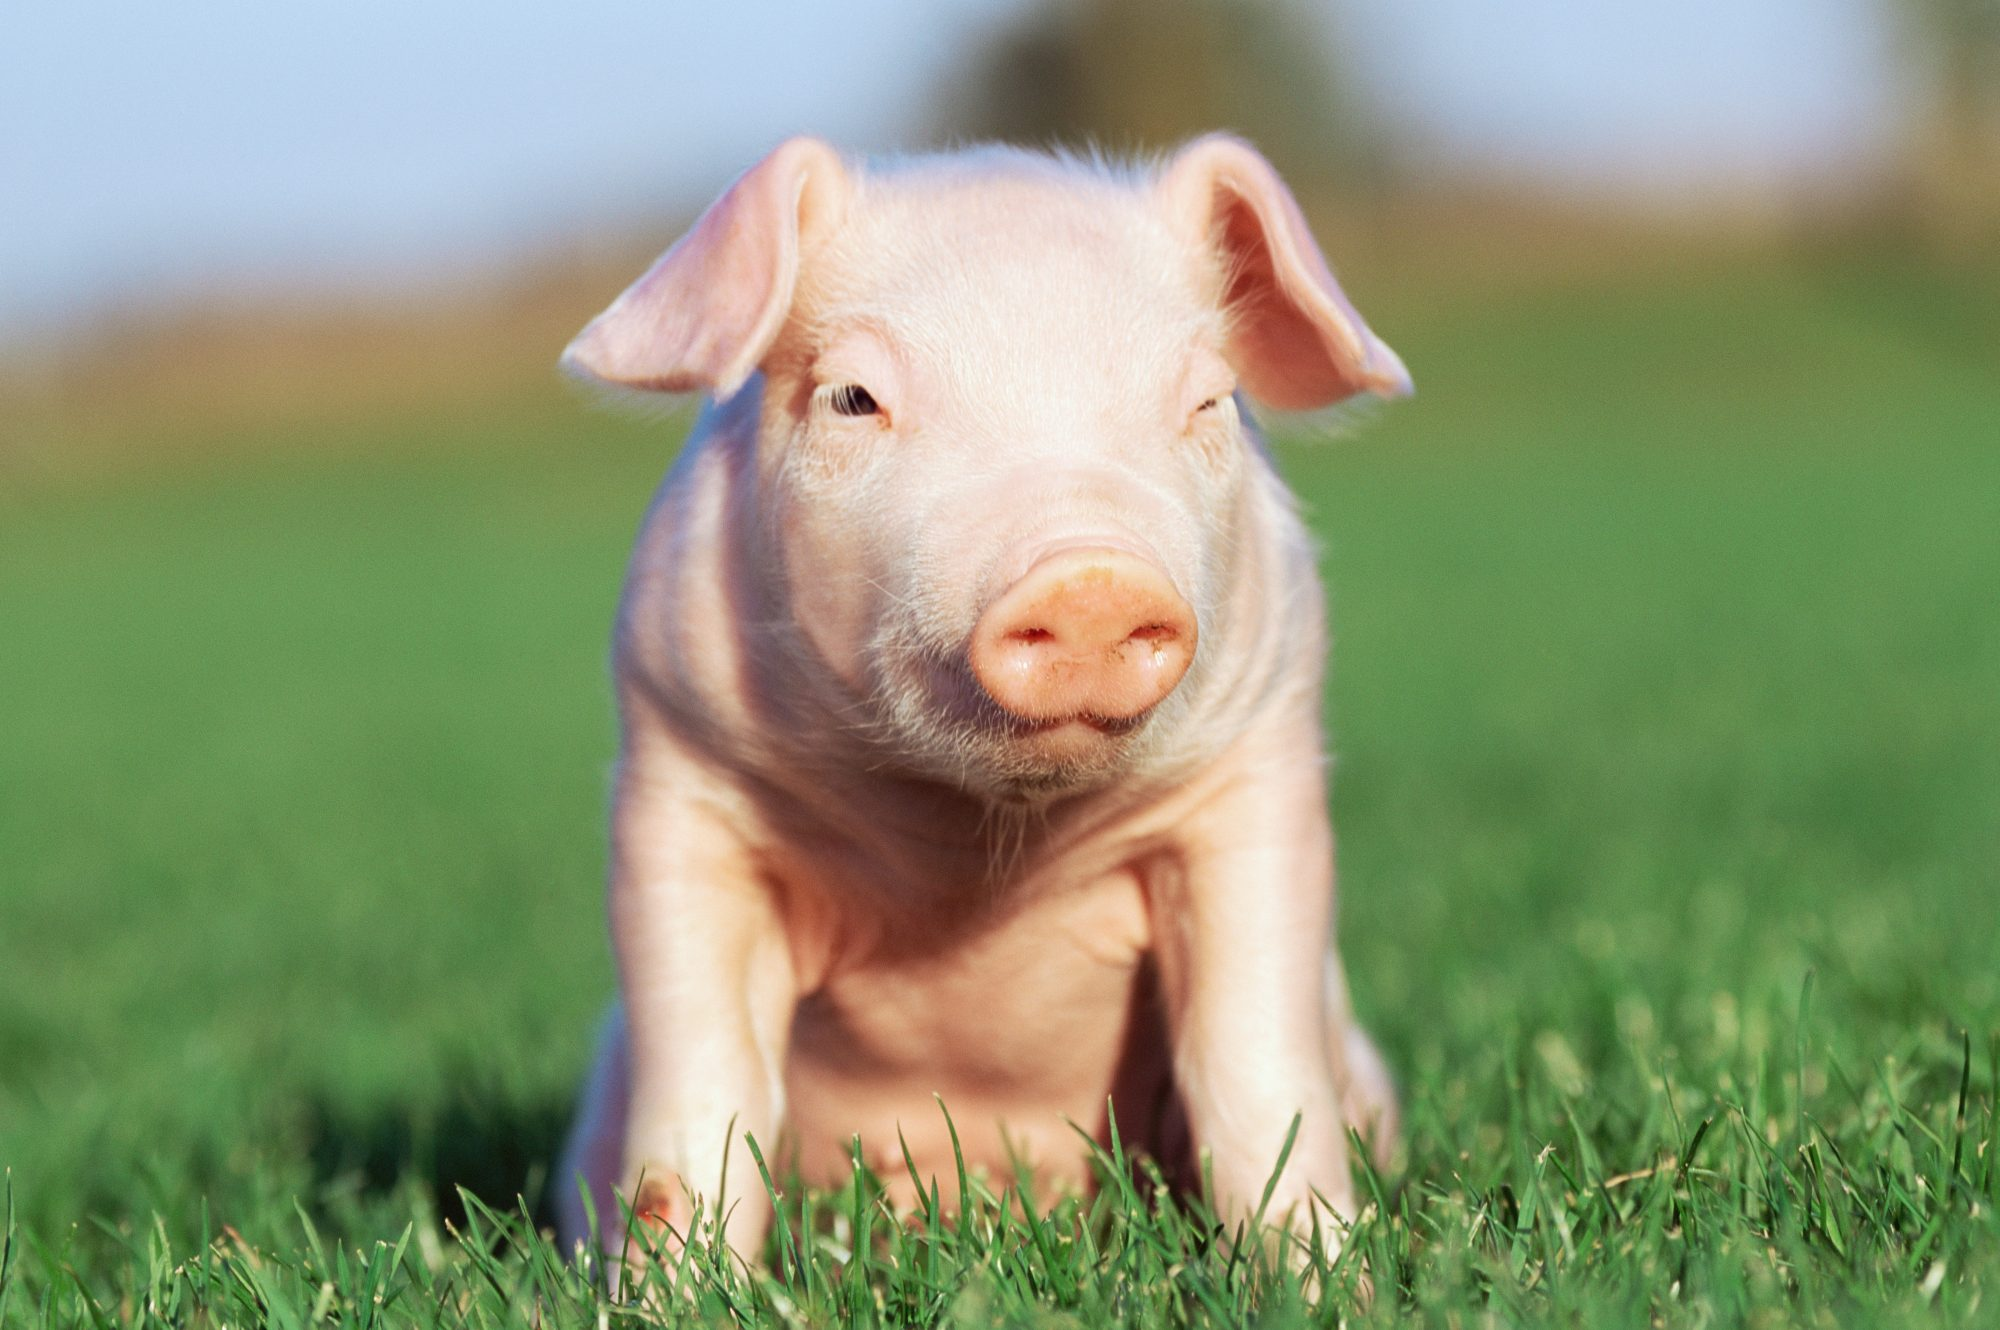 pink piglet sitting in grass field